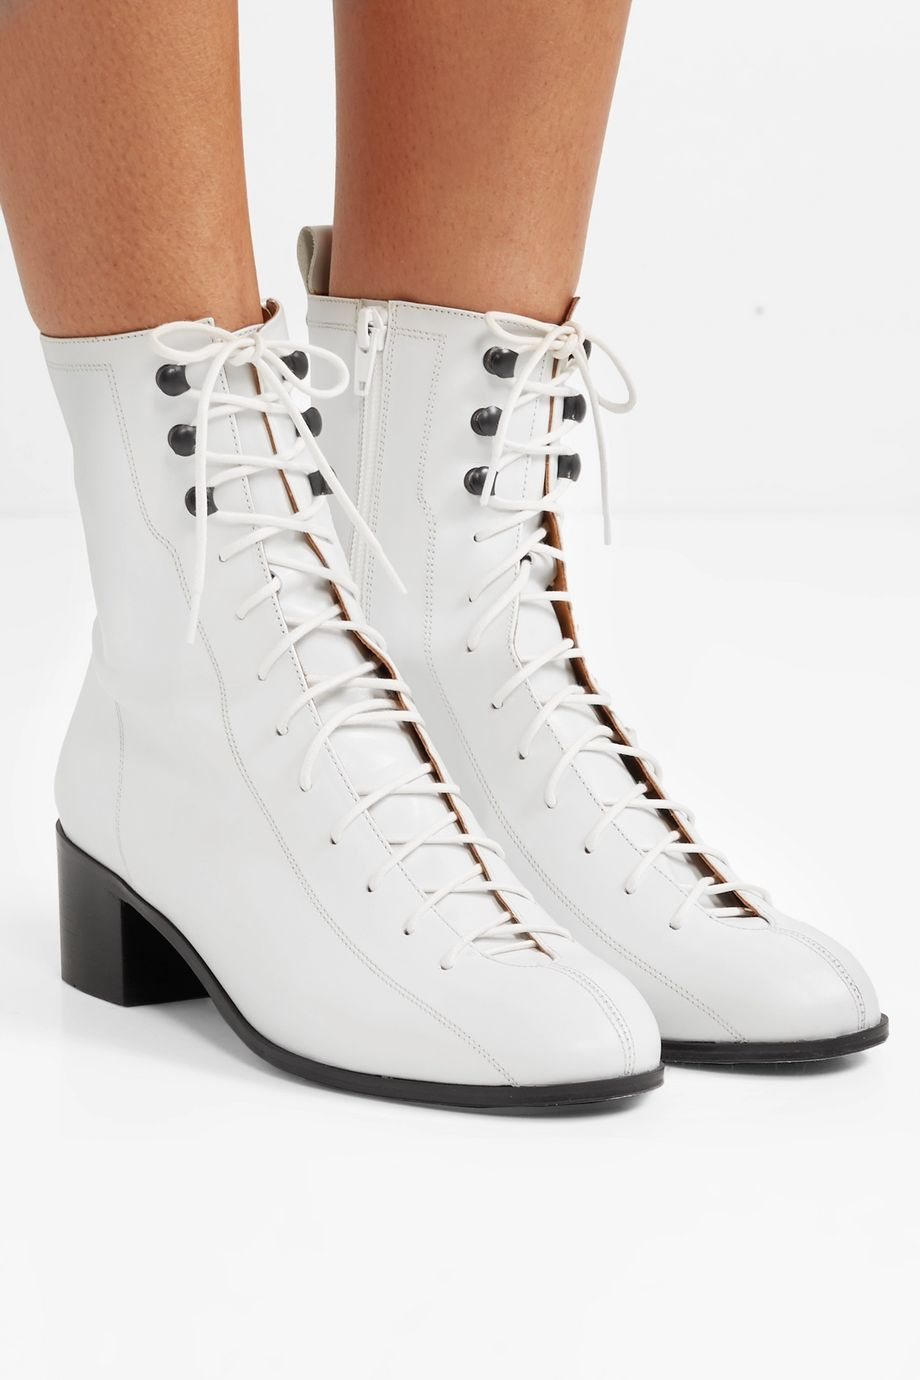 BY FAR Bota lace-up leather ankle boots